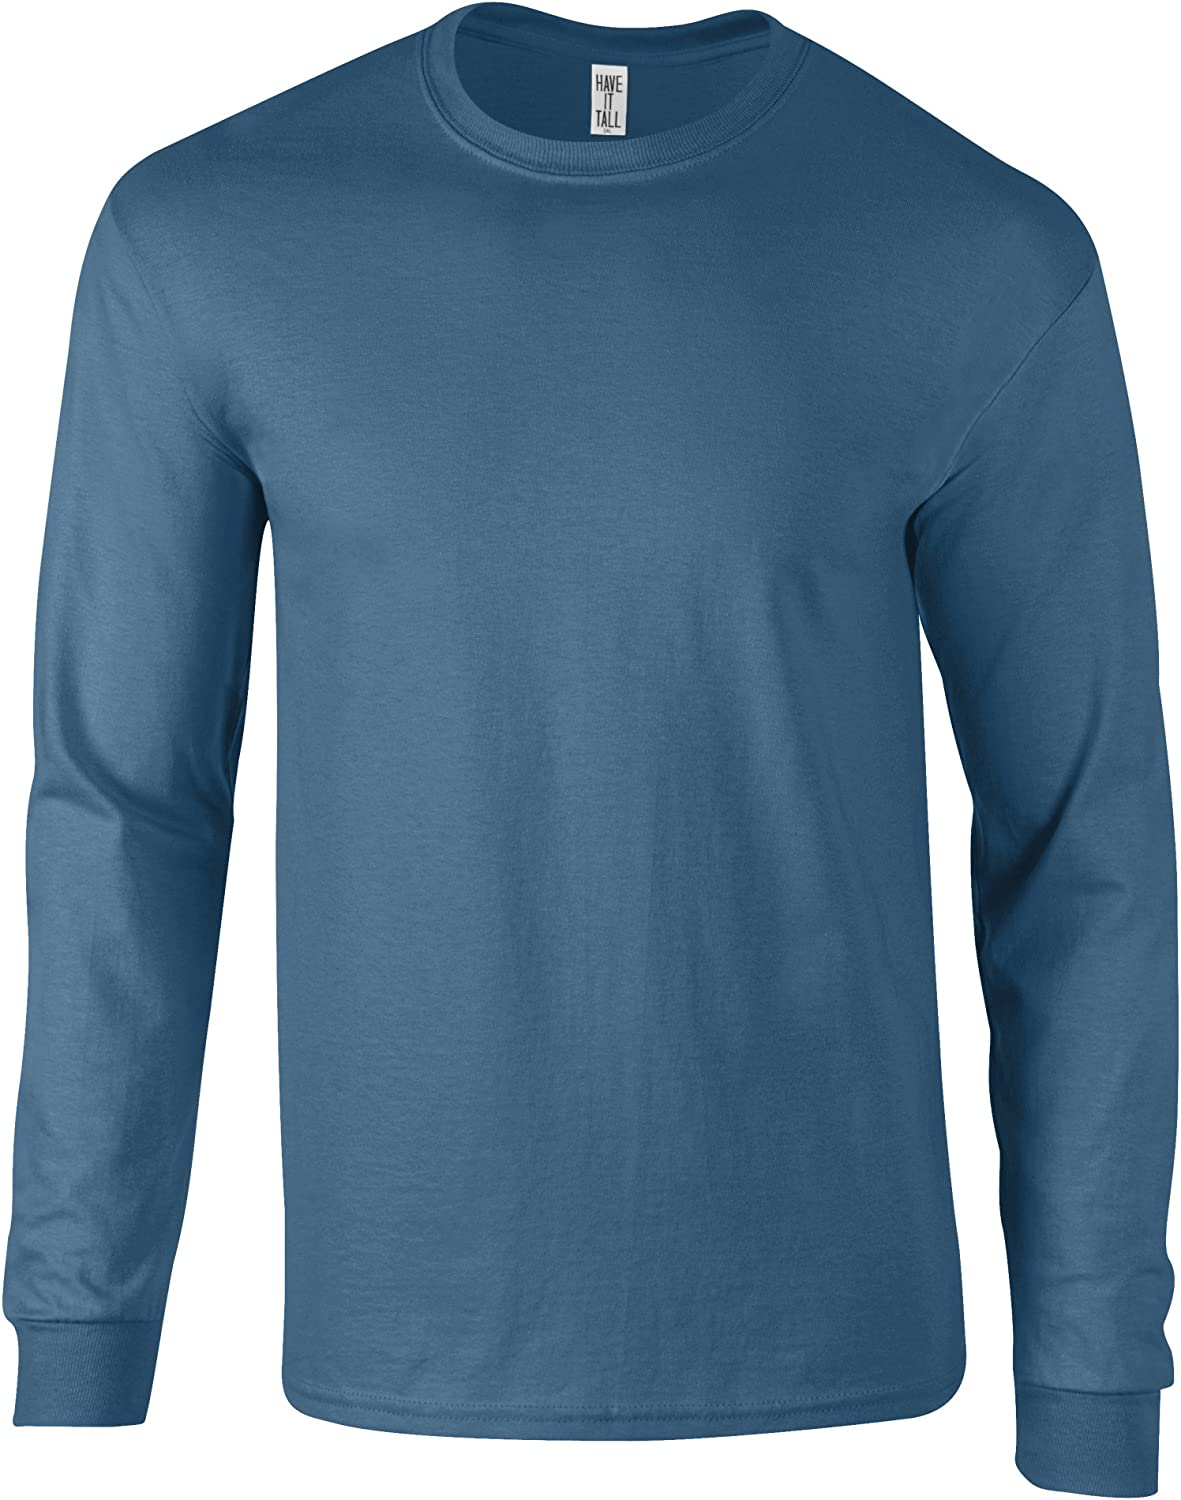 Cotton Long Sleeve Sizes S 2XL Have It Tall T Shirts for Men and Women